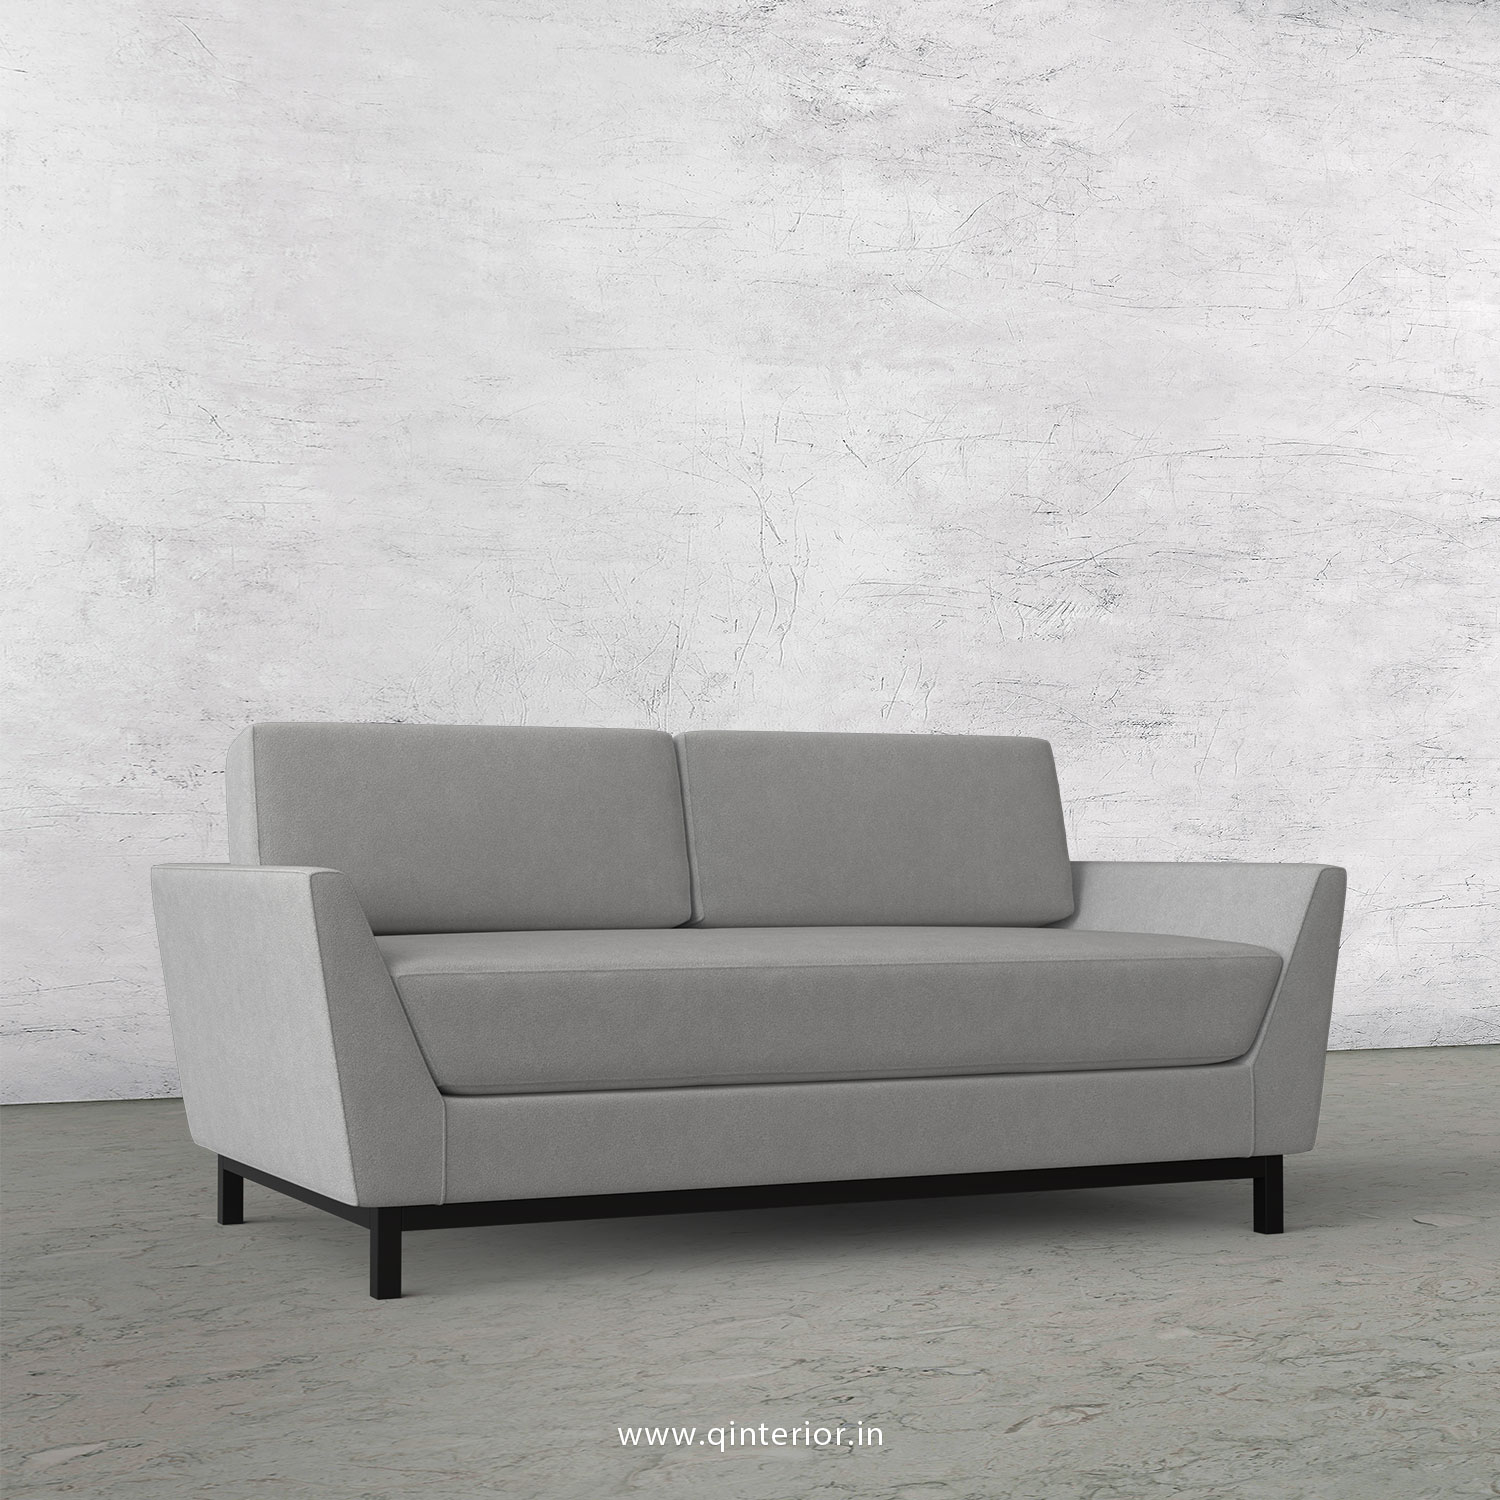 Blitz 2 Seater Sofa in Velvet Fabric - SFA002 VL06